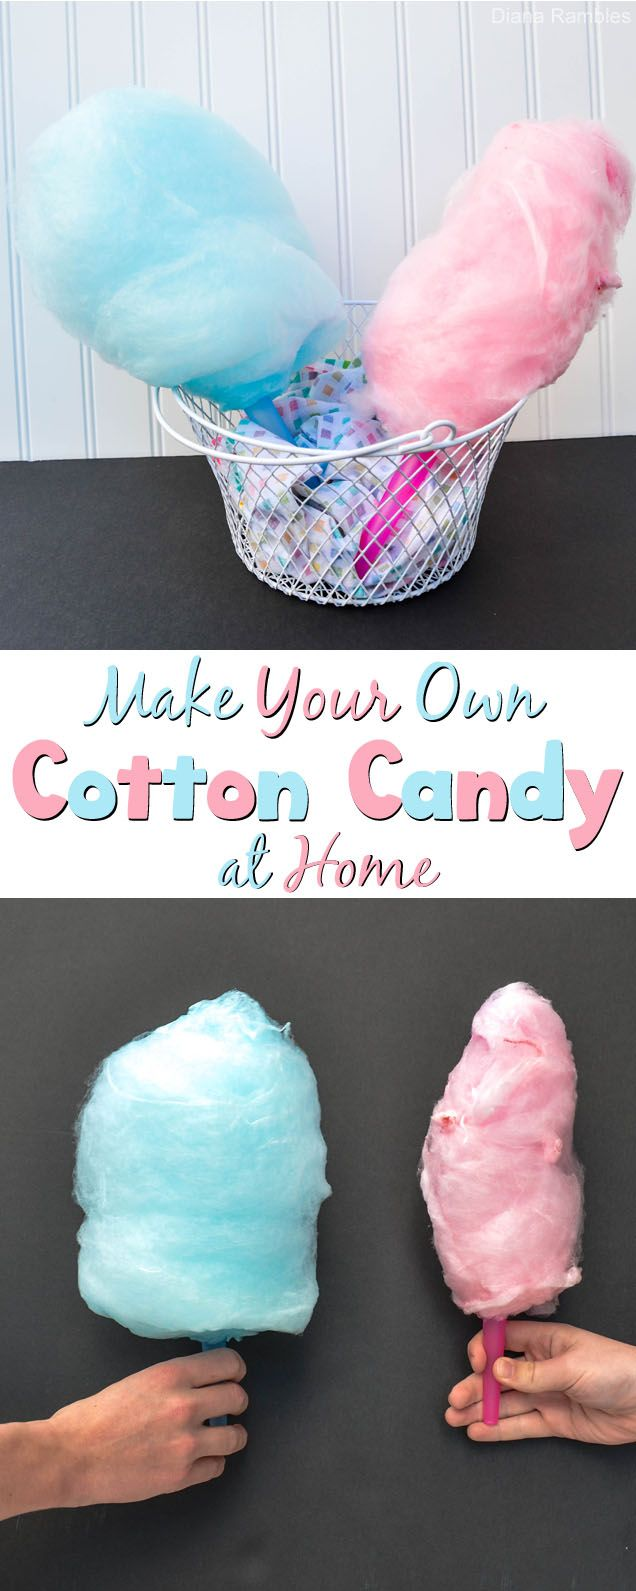 Make Your Own Cotton Candy at Home #DIY #cottoncandy